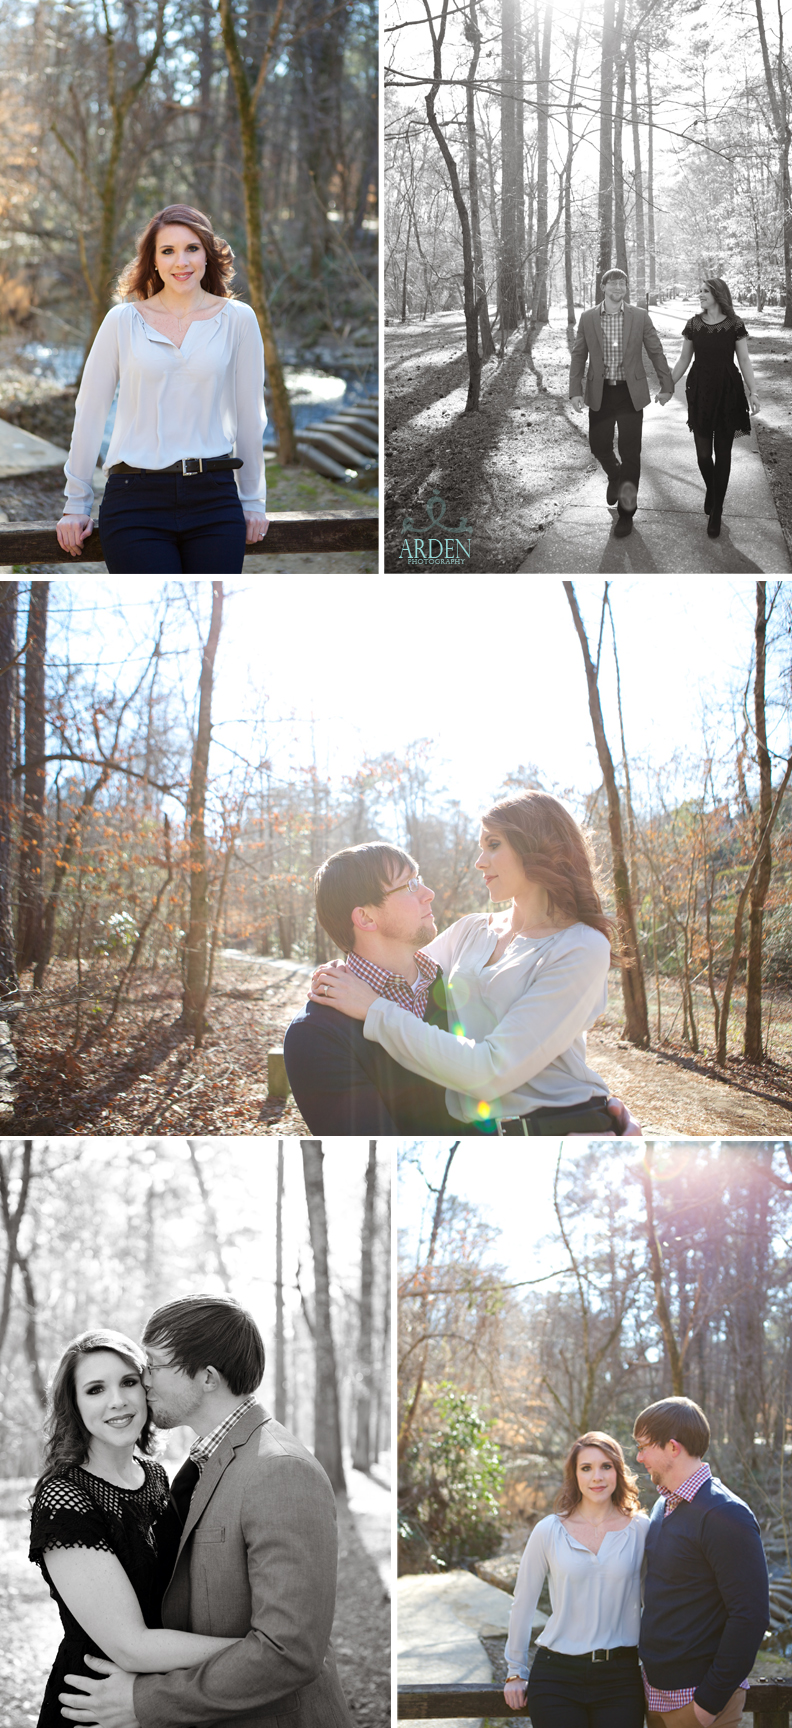 Sarah_Gilbert_Engagement_Arden_Photography.jpg